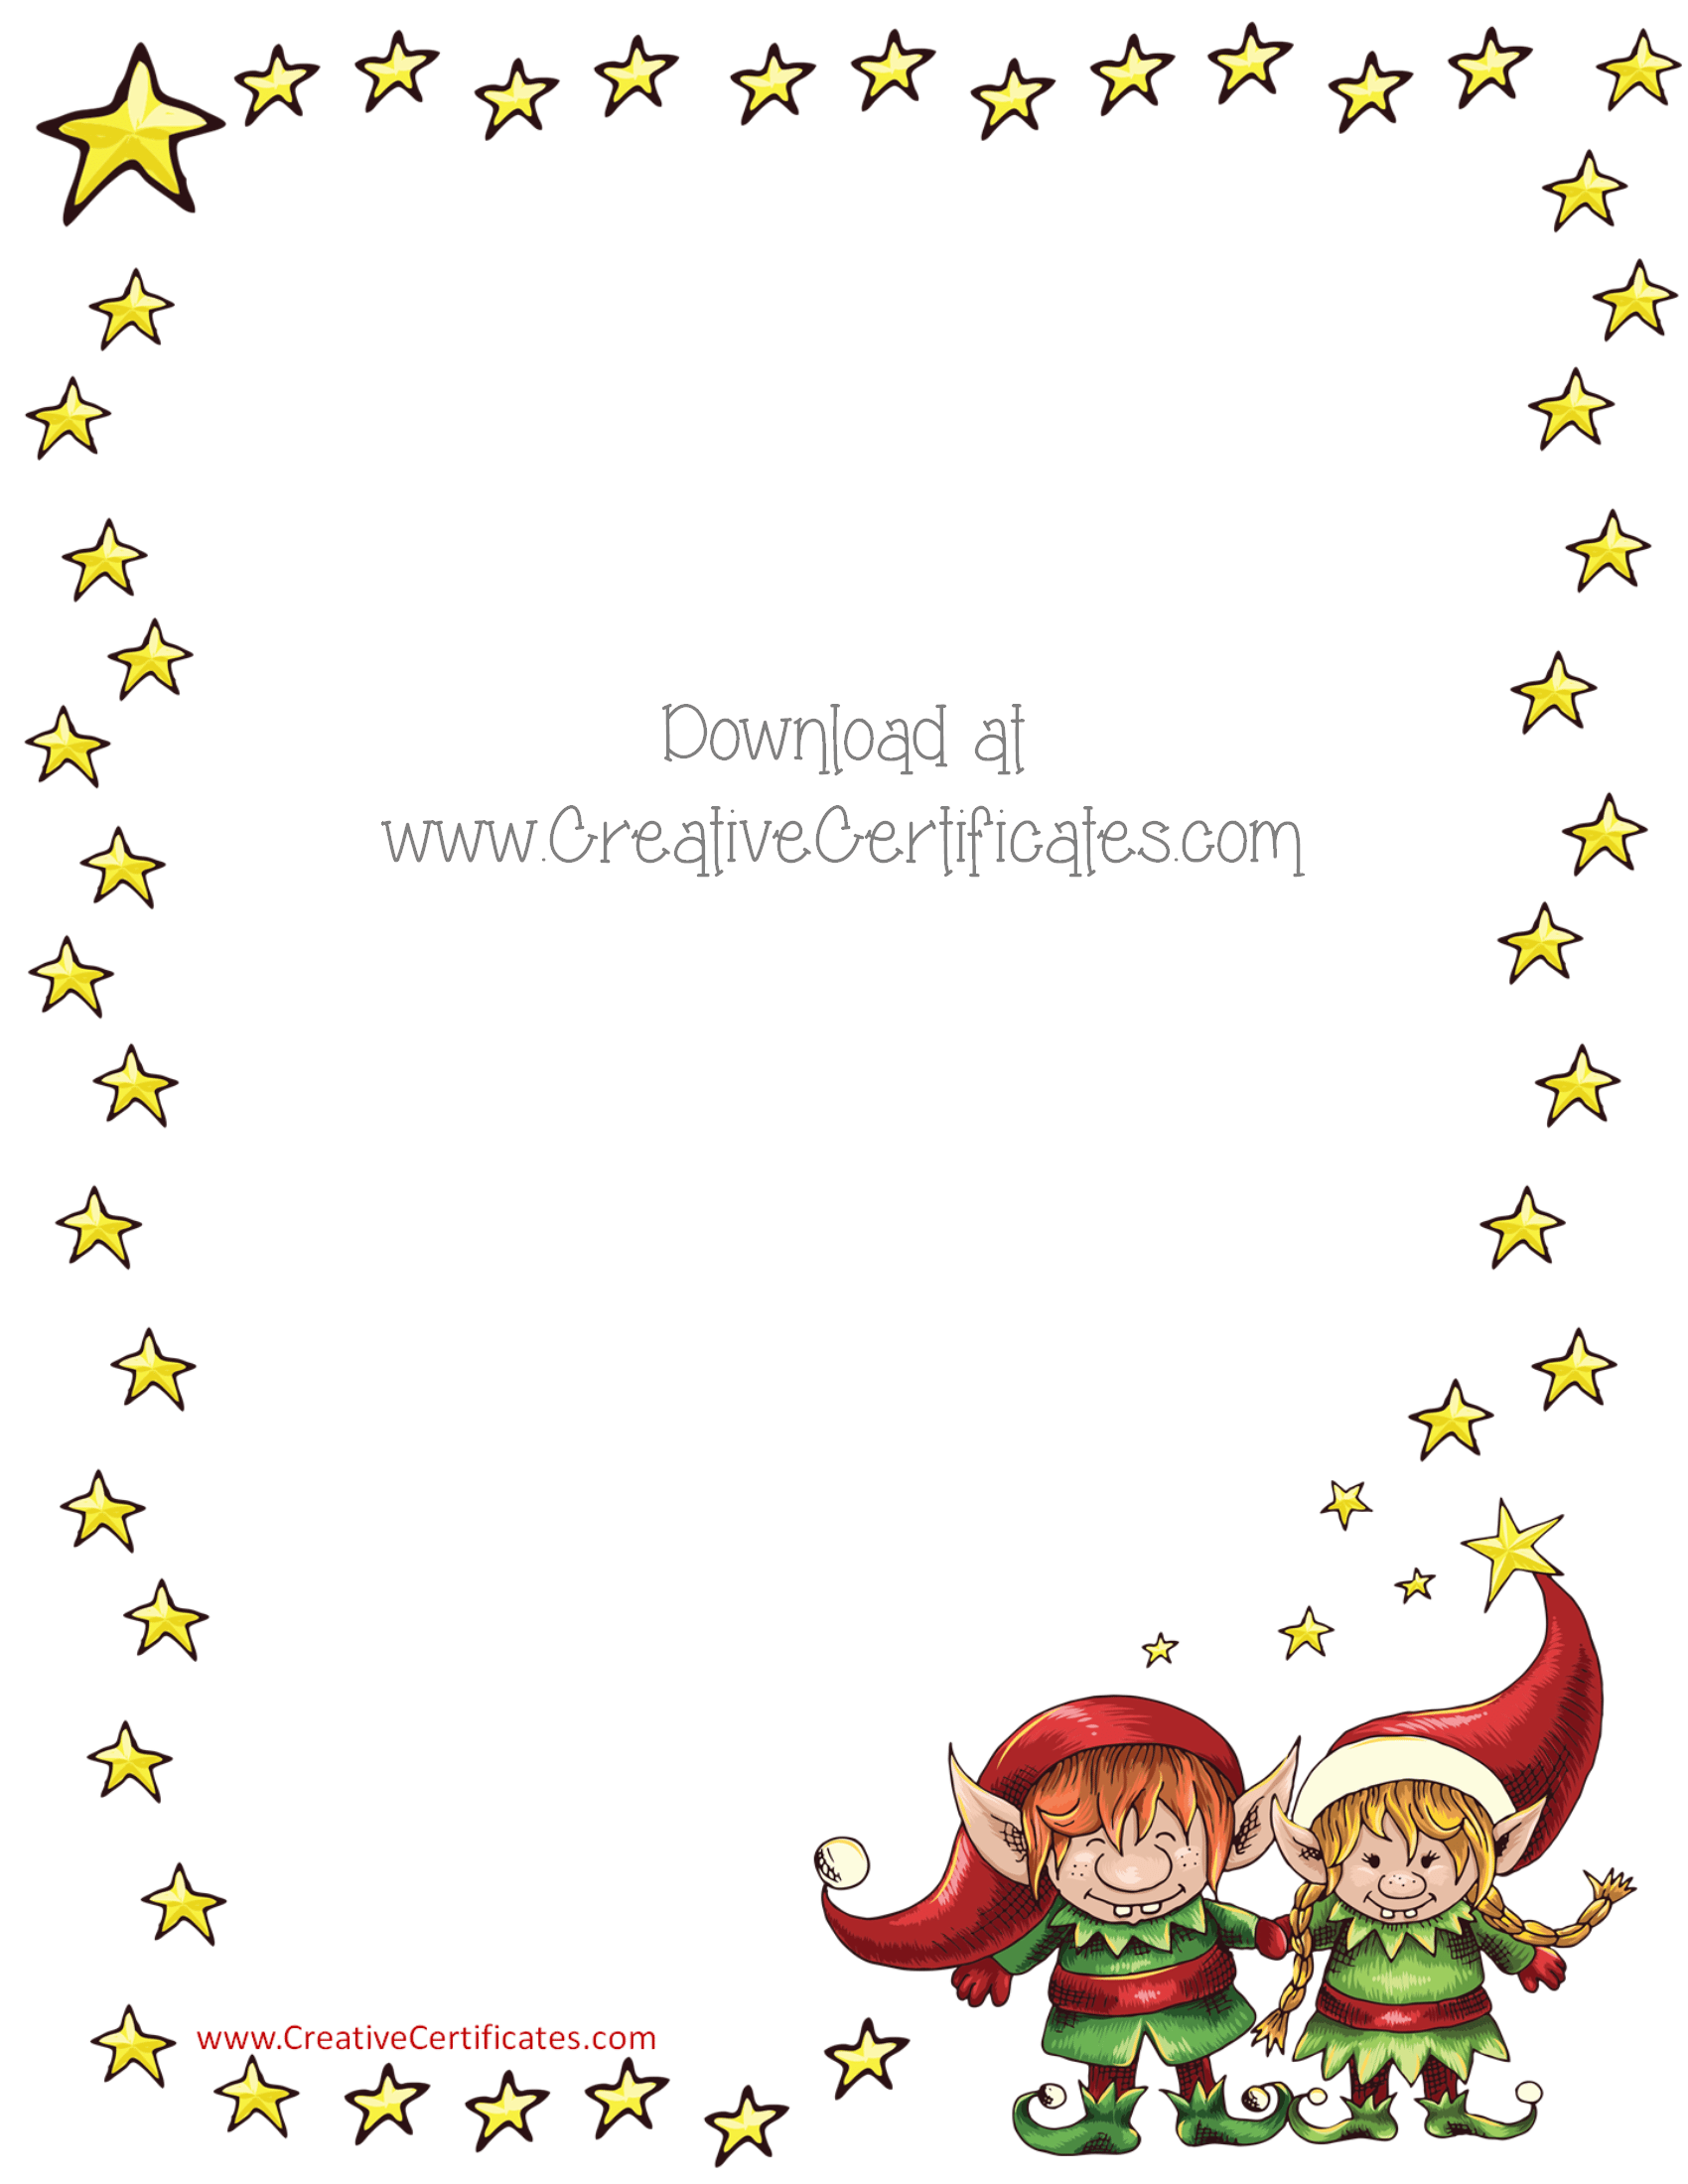 free christmas border templates customize online then download rh creativecertificates com free download christmas borders & clipart free christmas border clipart for word